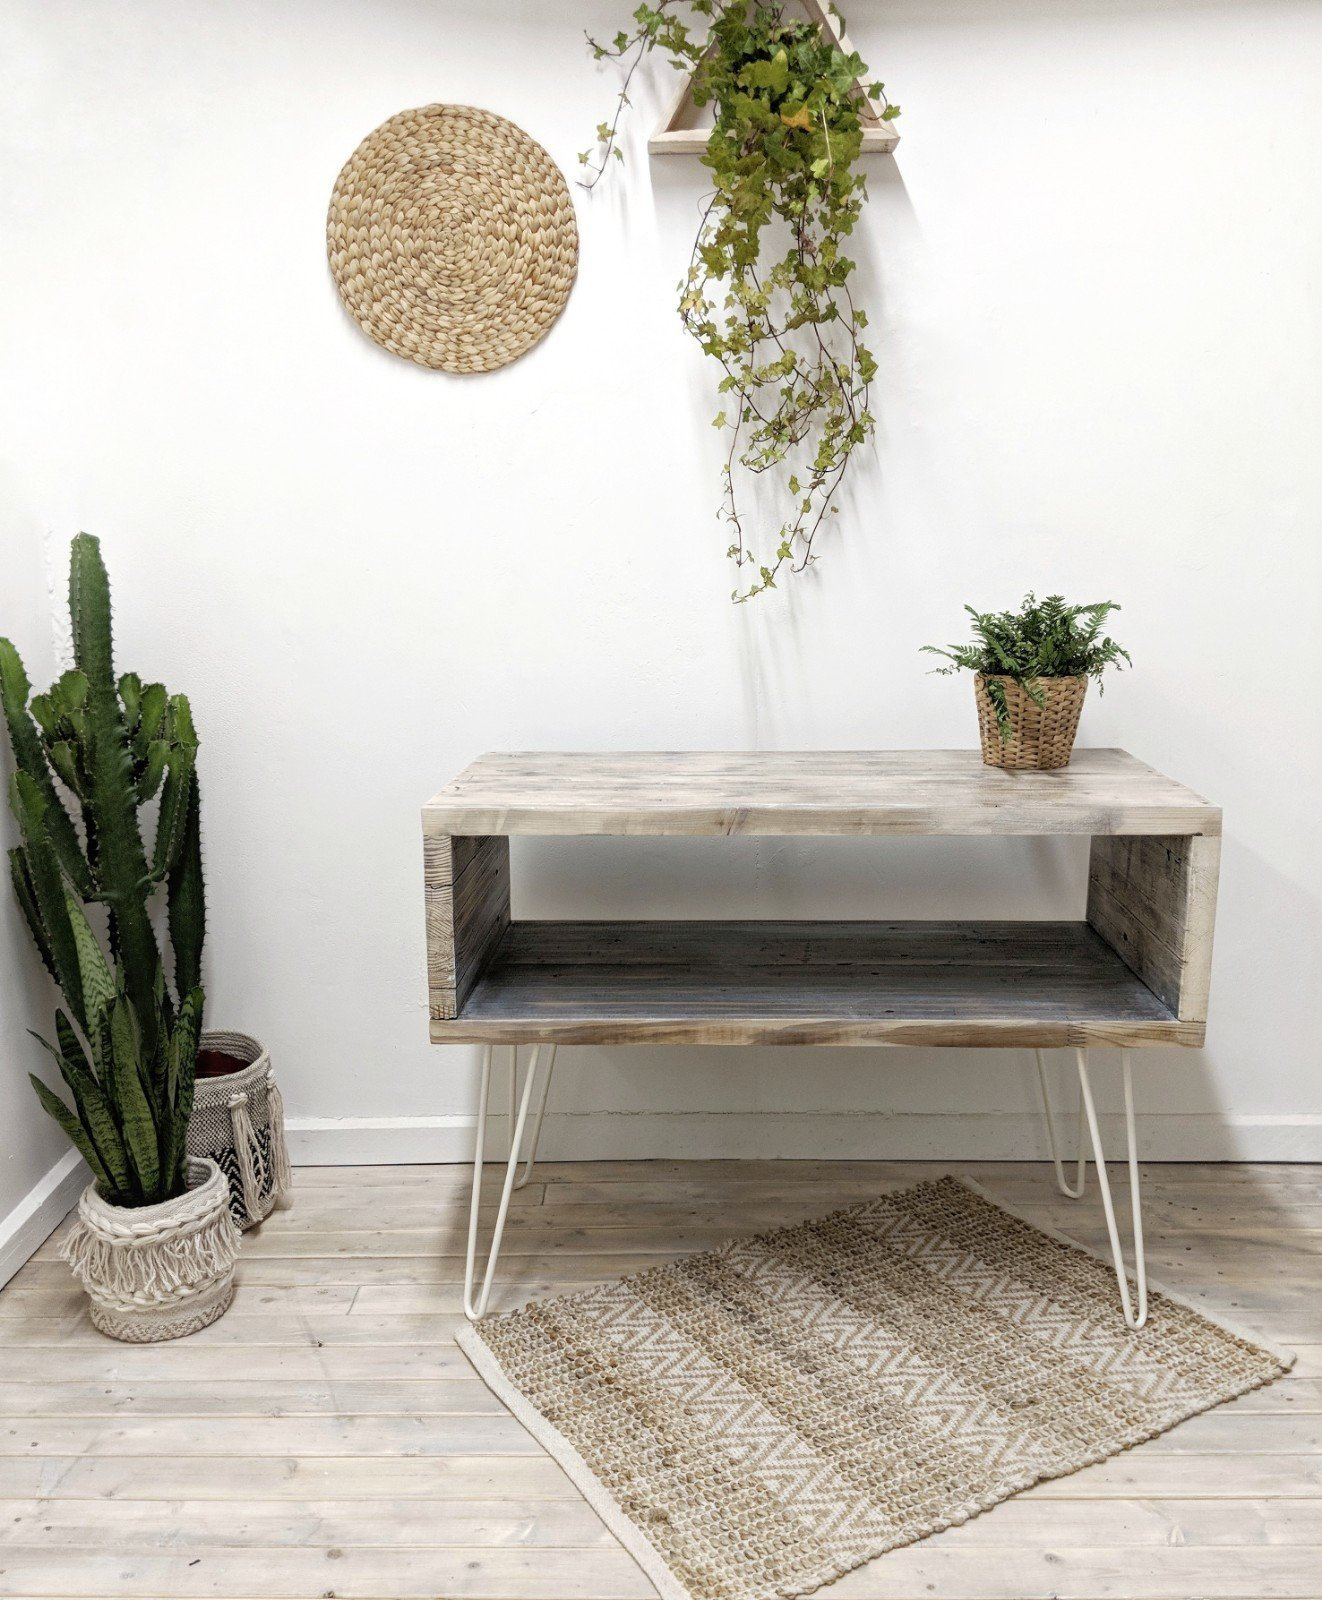 Reclaimed Wood Sideboard Ava In Driftwood Finish Rustic Storage Media Cabinet Table Boho Living Room Characterful Design